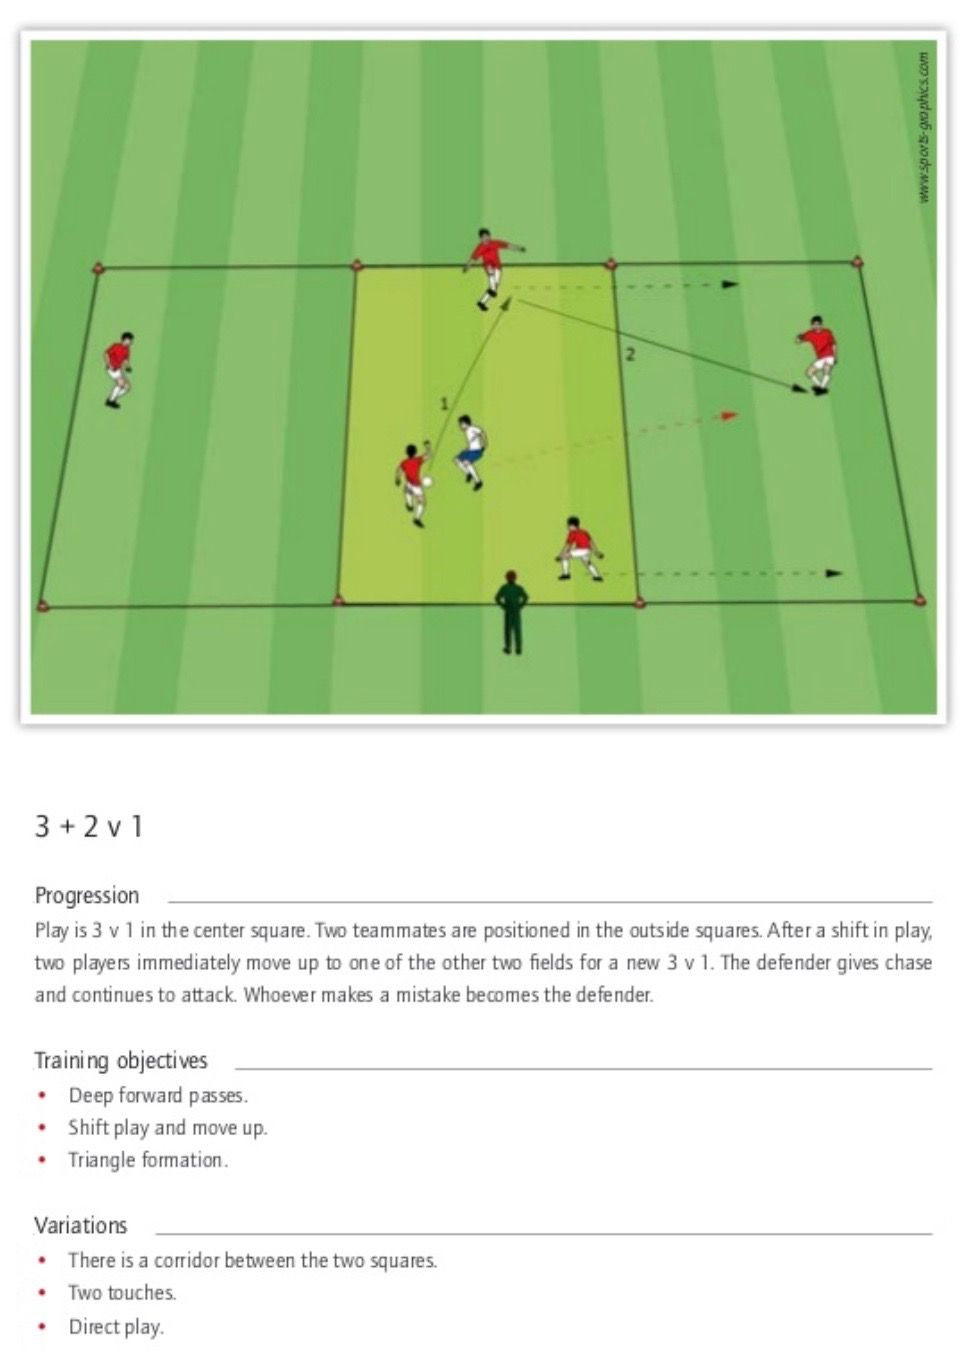 Pin By Crevan Pratt On Field Hockey Drills Soccer Drills Soccer Skills Soccer Practice